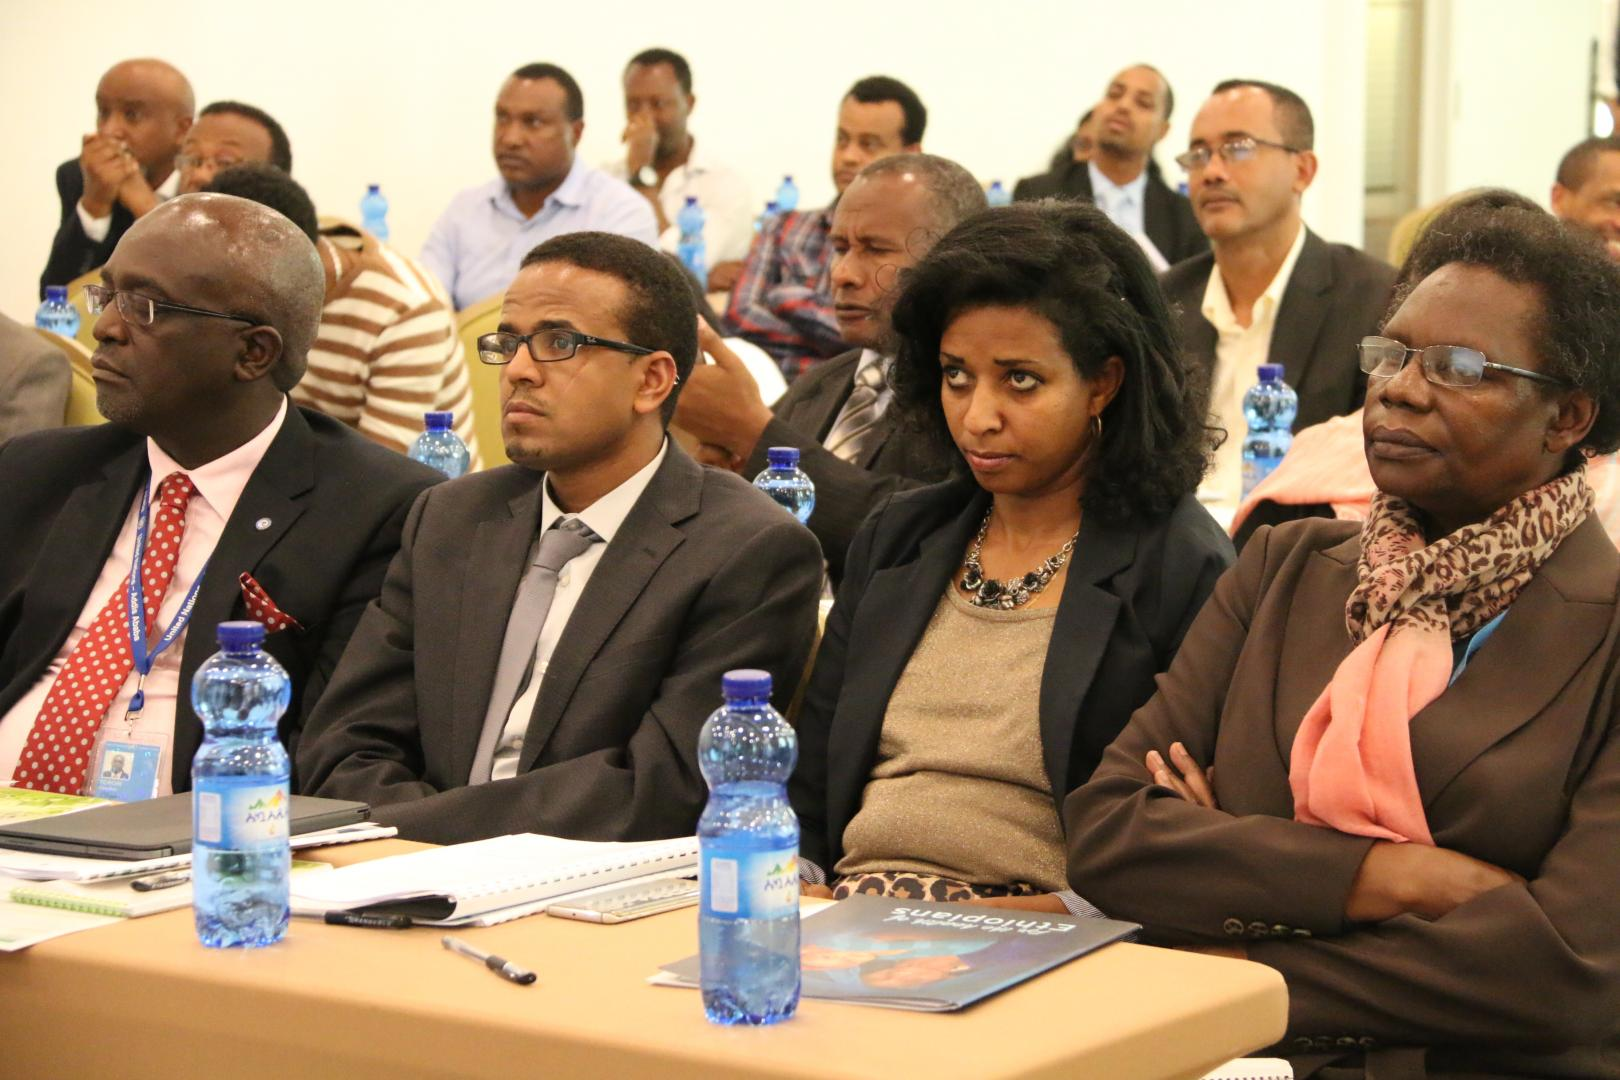 Representatives from Ministry of Health, UNDP and WHO attending the launching event